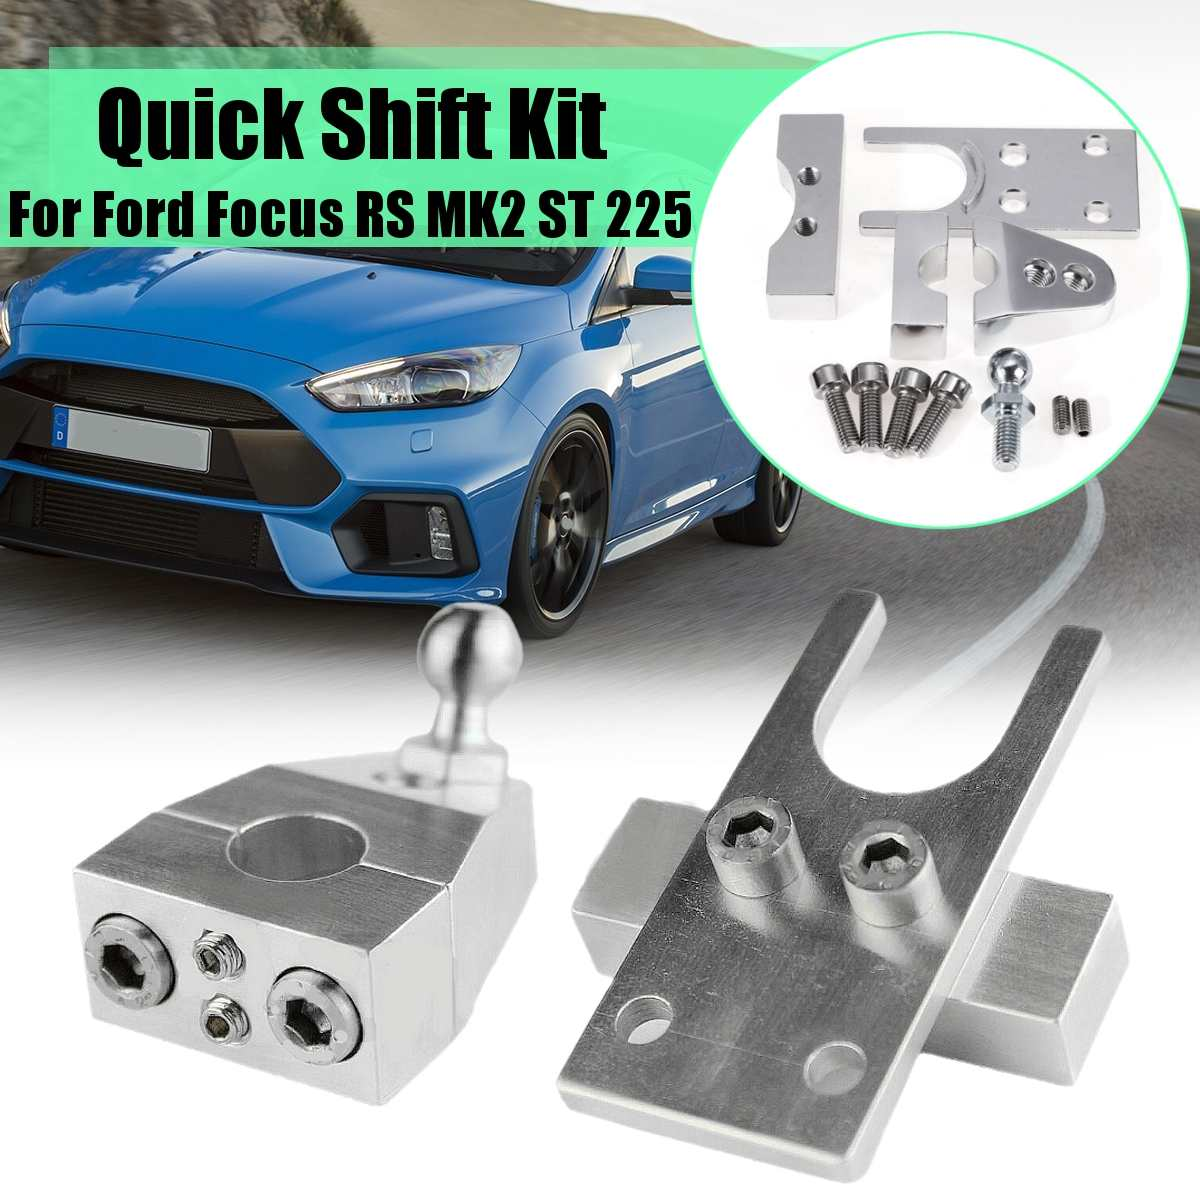 1Set Car Billet Stainless Steel Quickshift Race Rally Quick Shift Kit For Ford For Focus RS MK2 ST 225 Es70150 Accessories